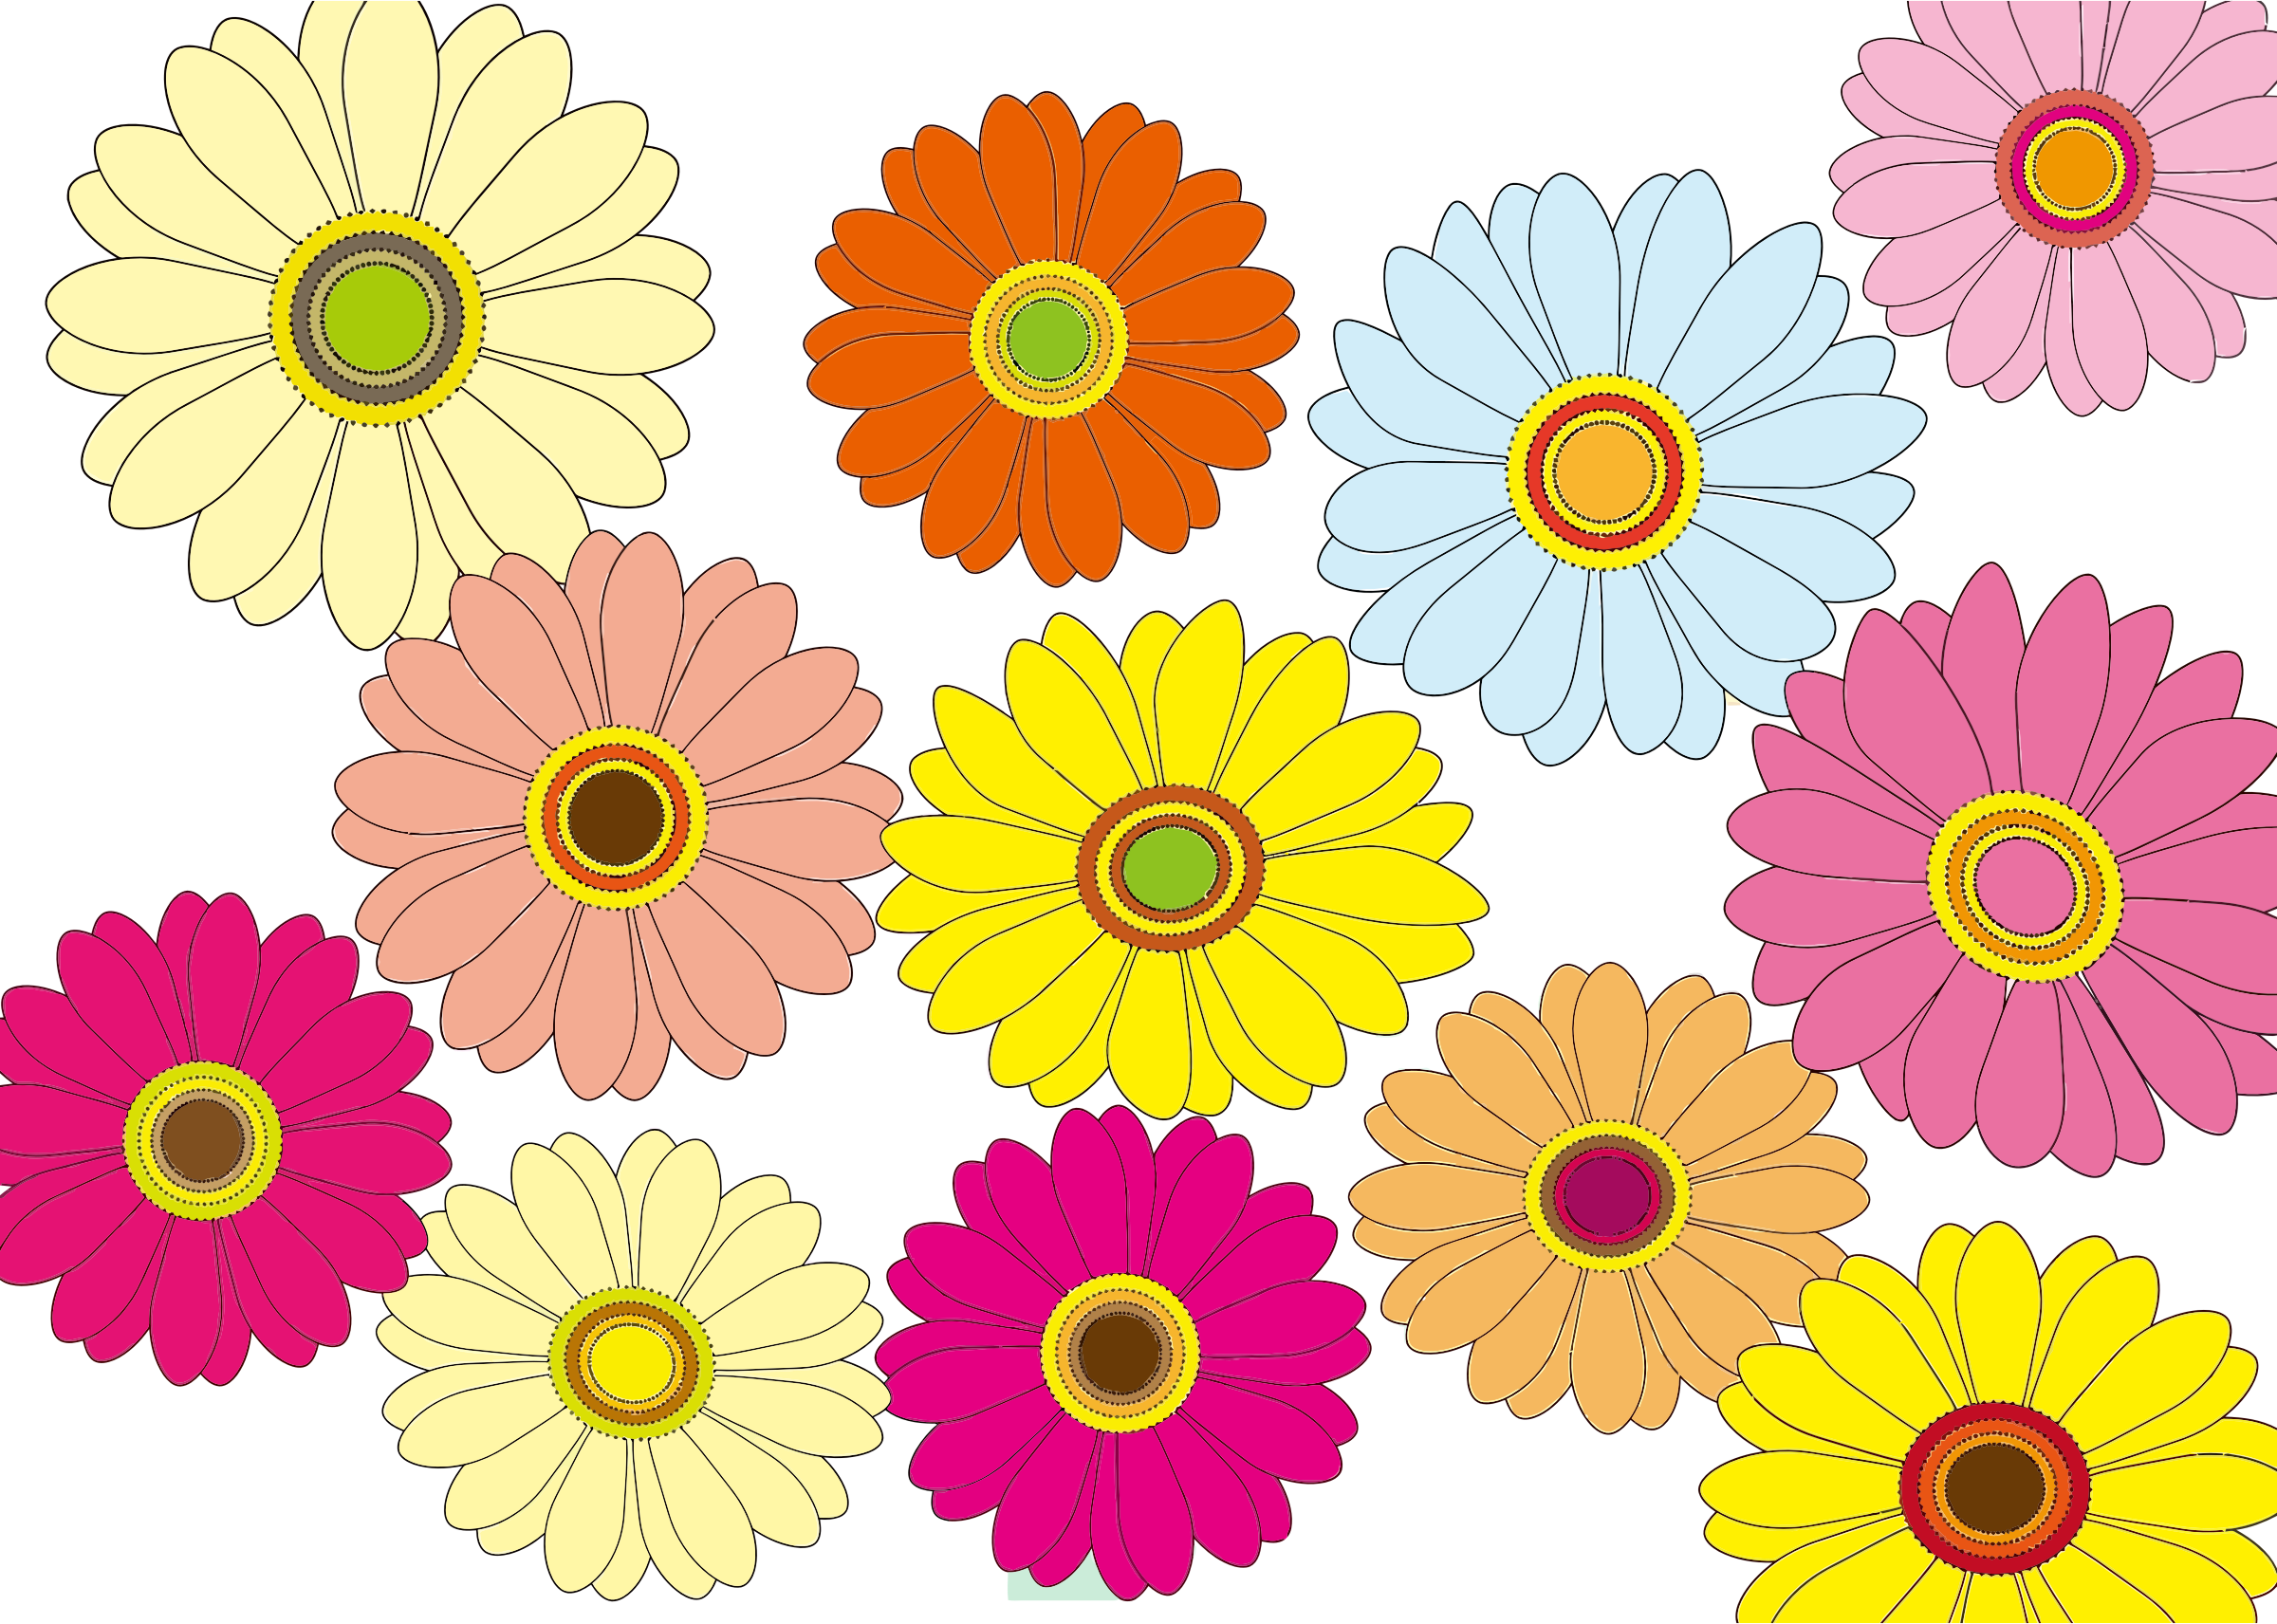 Daisies clipart multicolor. Multicolored flowers big image